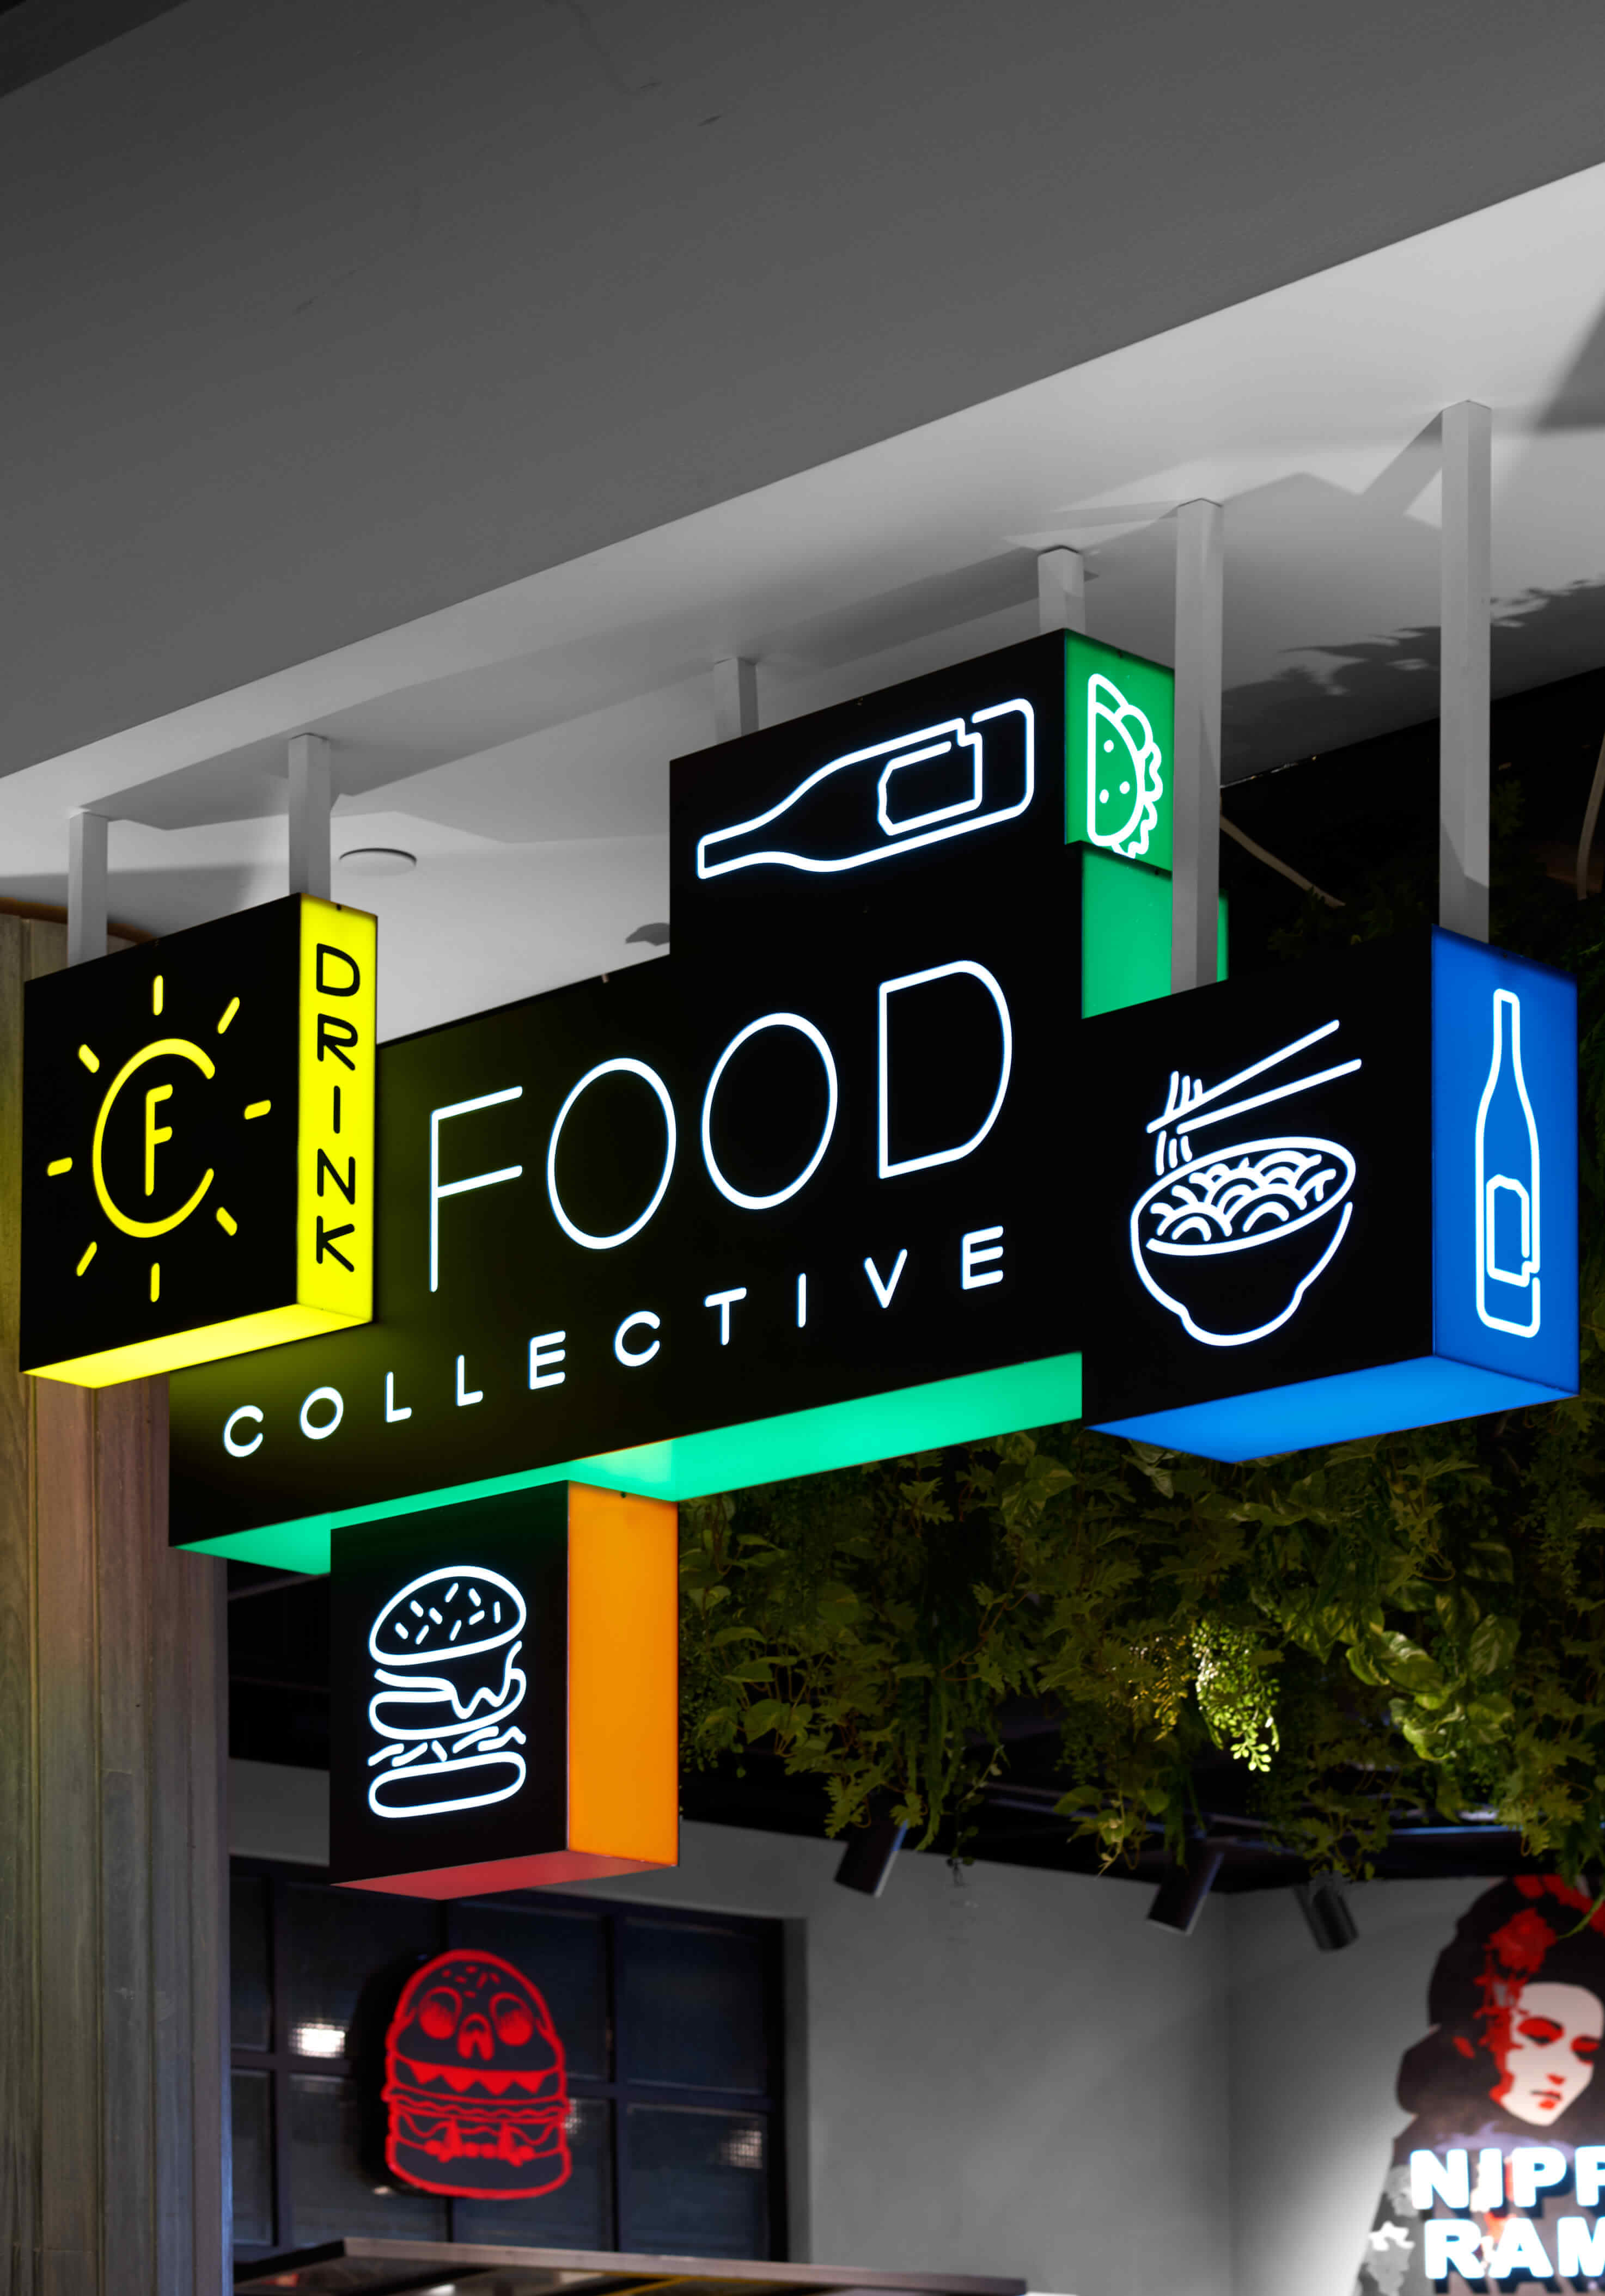 Food Collective Brisbane